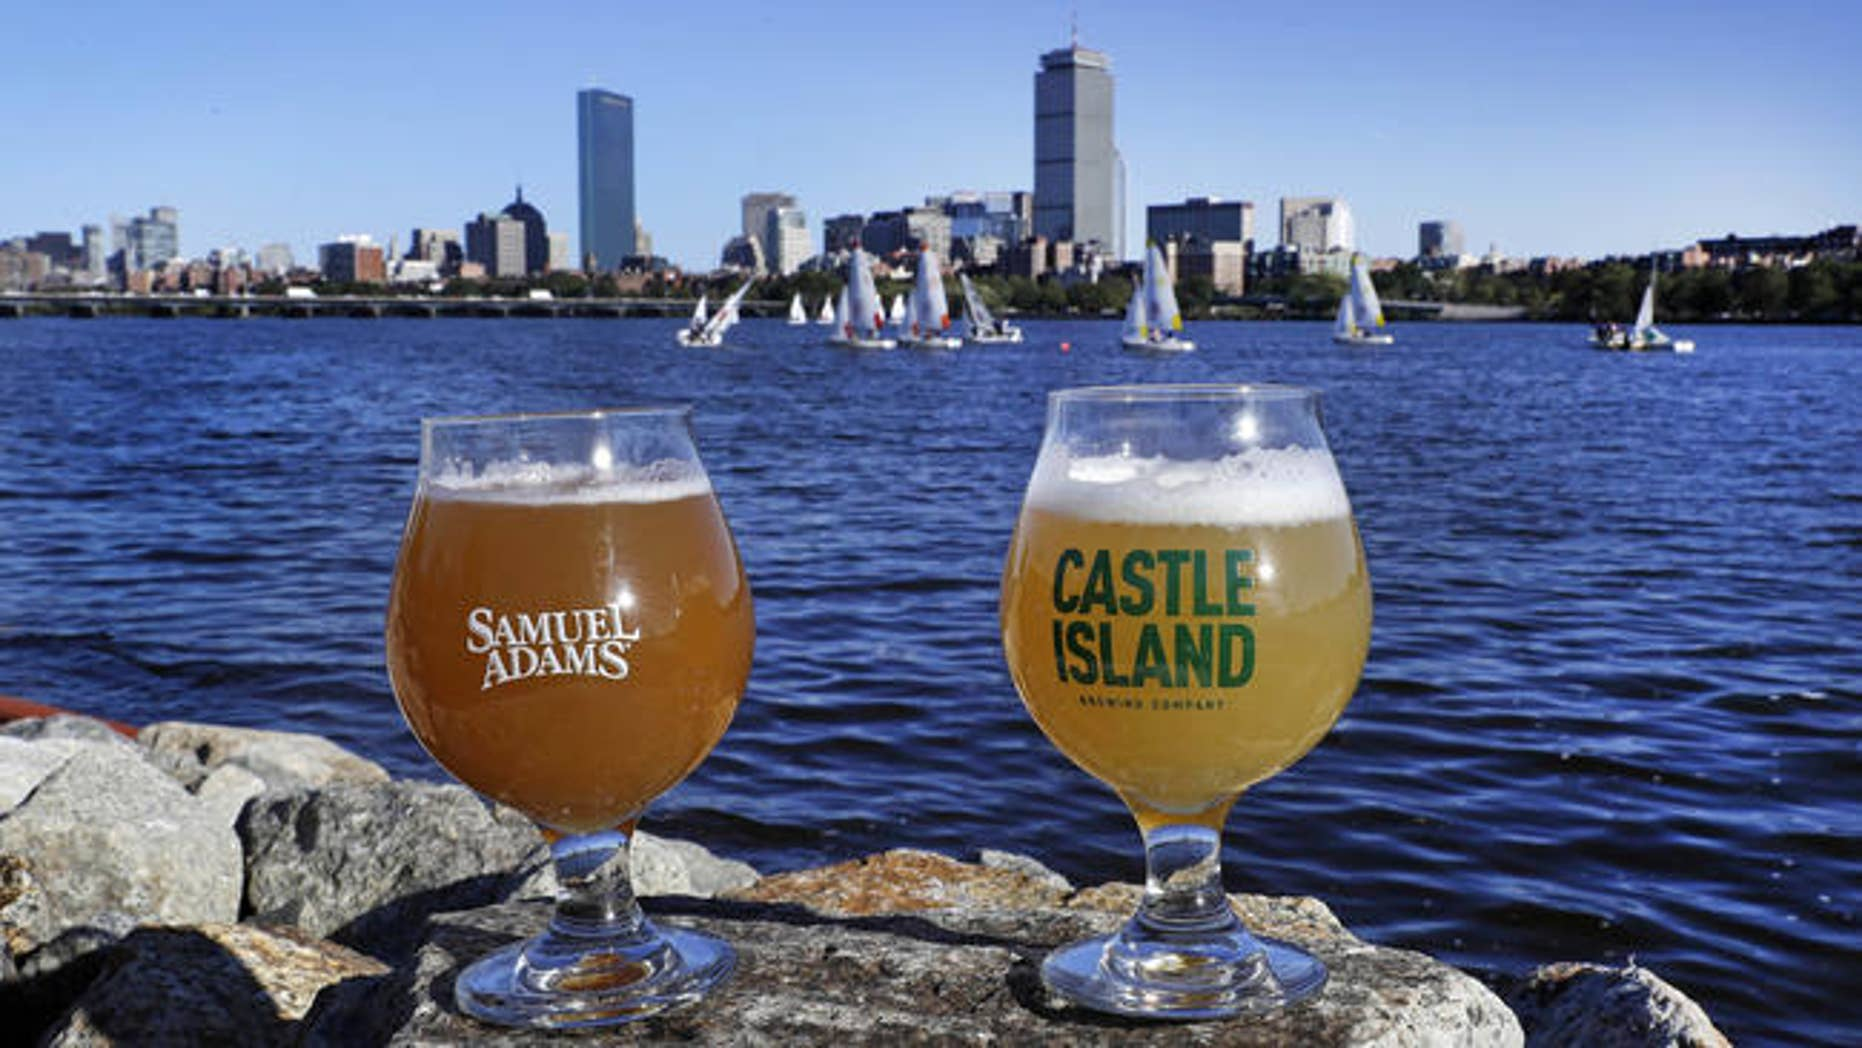 Taste the river? These brews are made with water from Boston's famed Charles River.